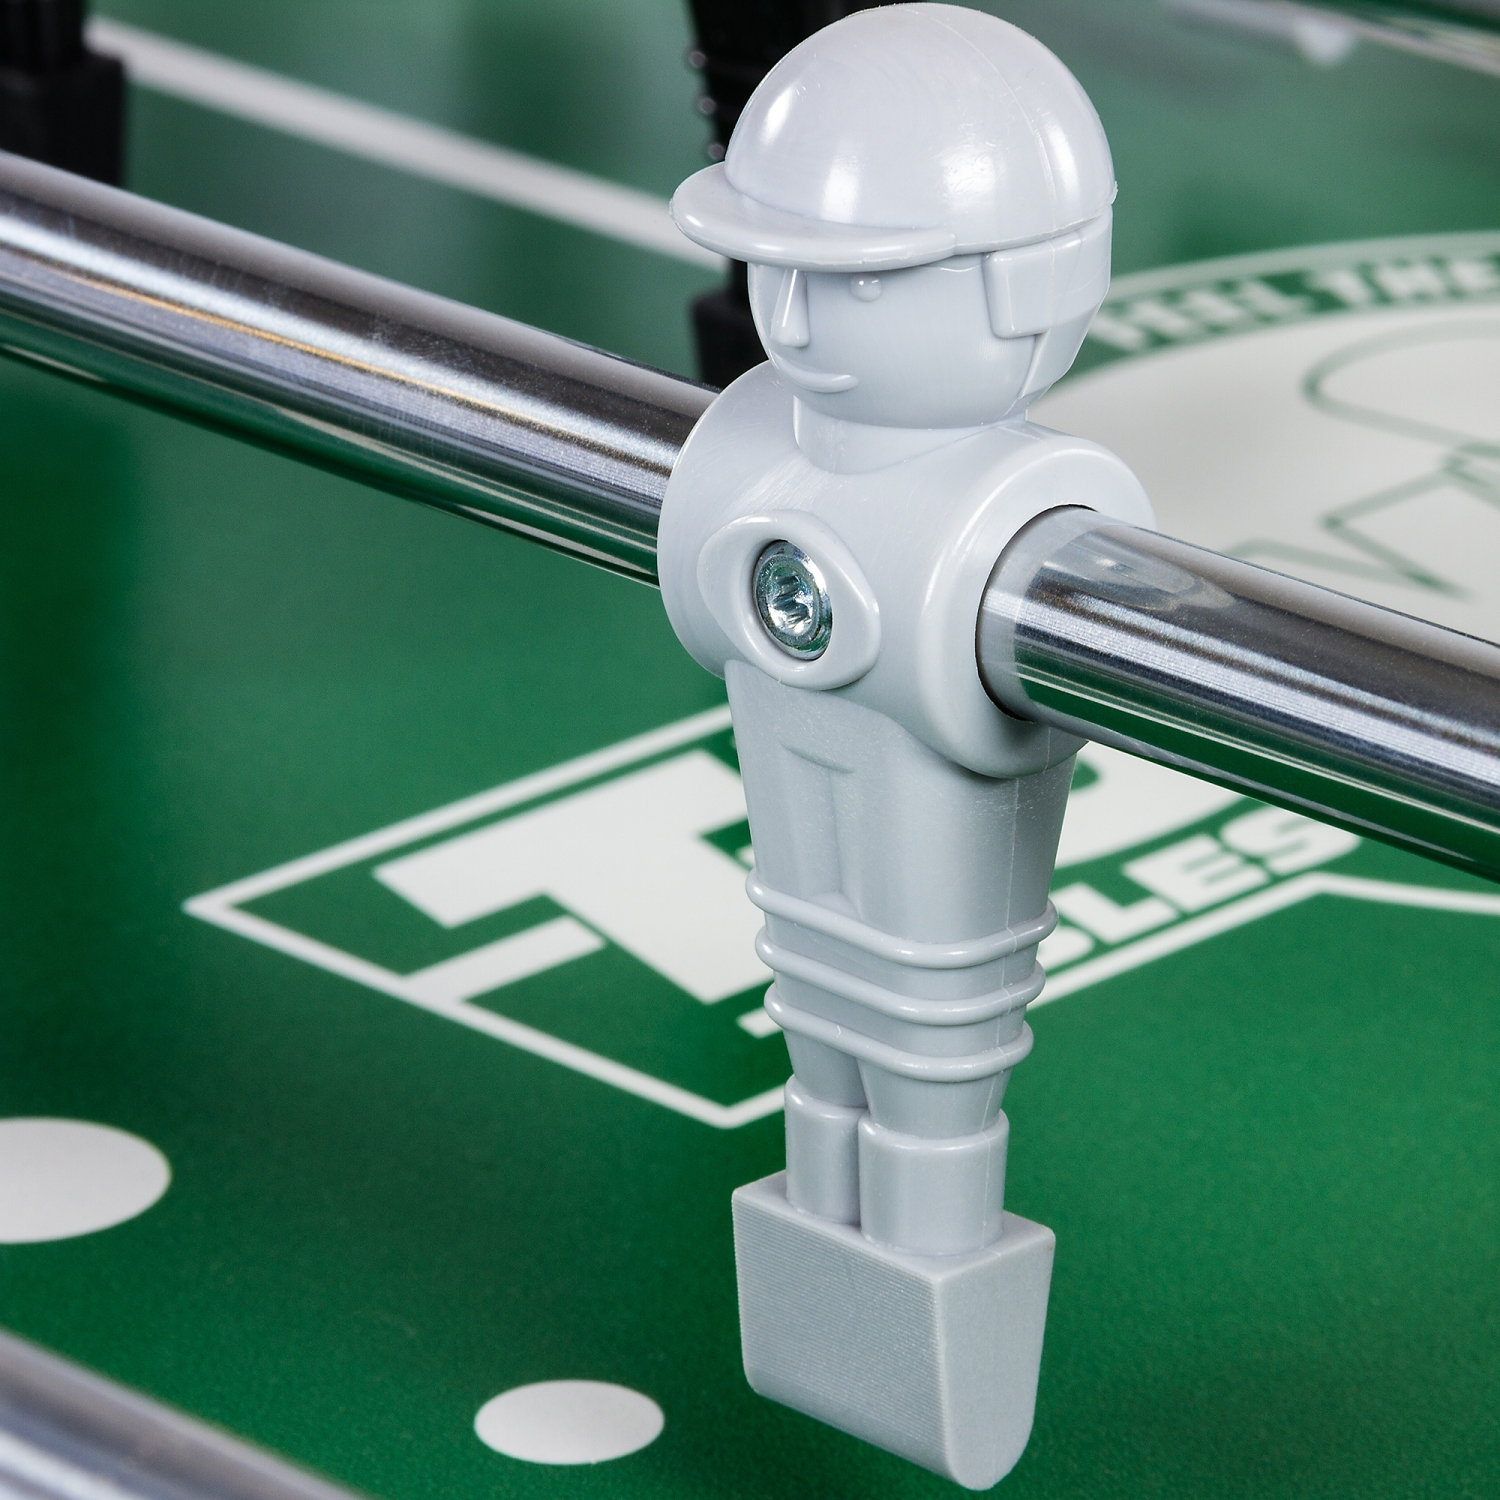 Leonhart Foosball Table Details about TUNIRO Pro Foosball table PLATINUM V Kicker 115 Kg